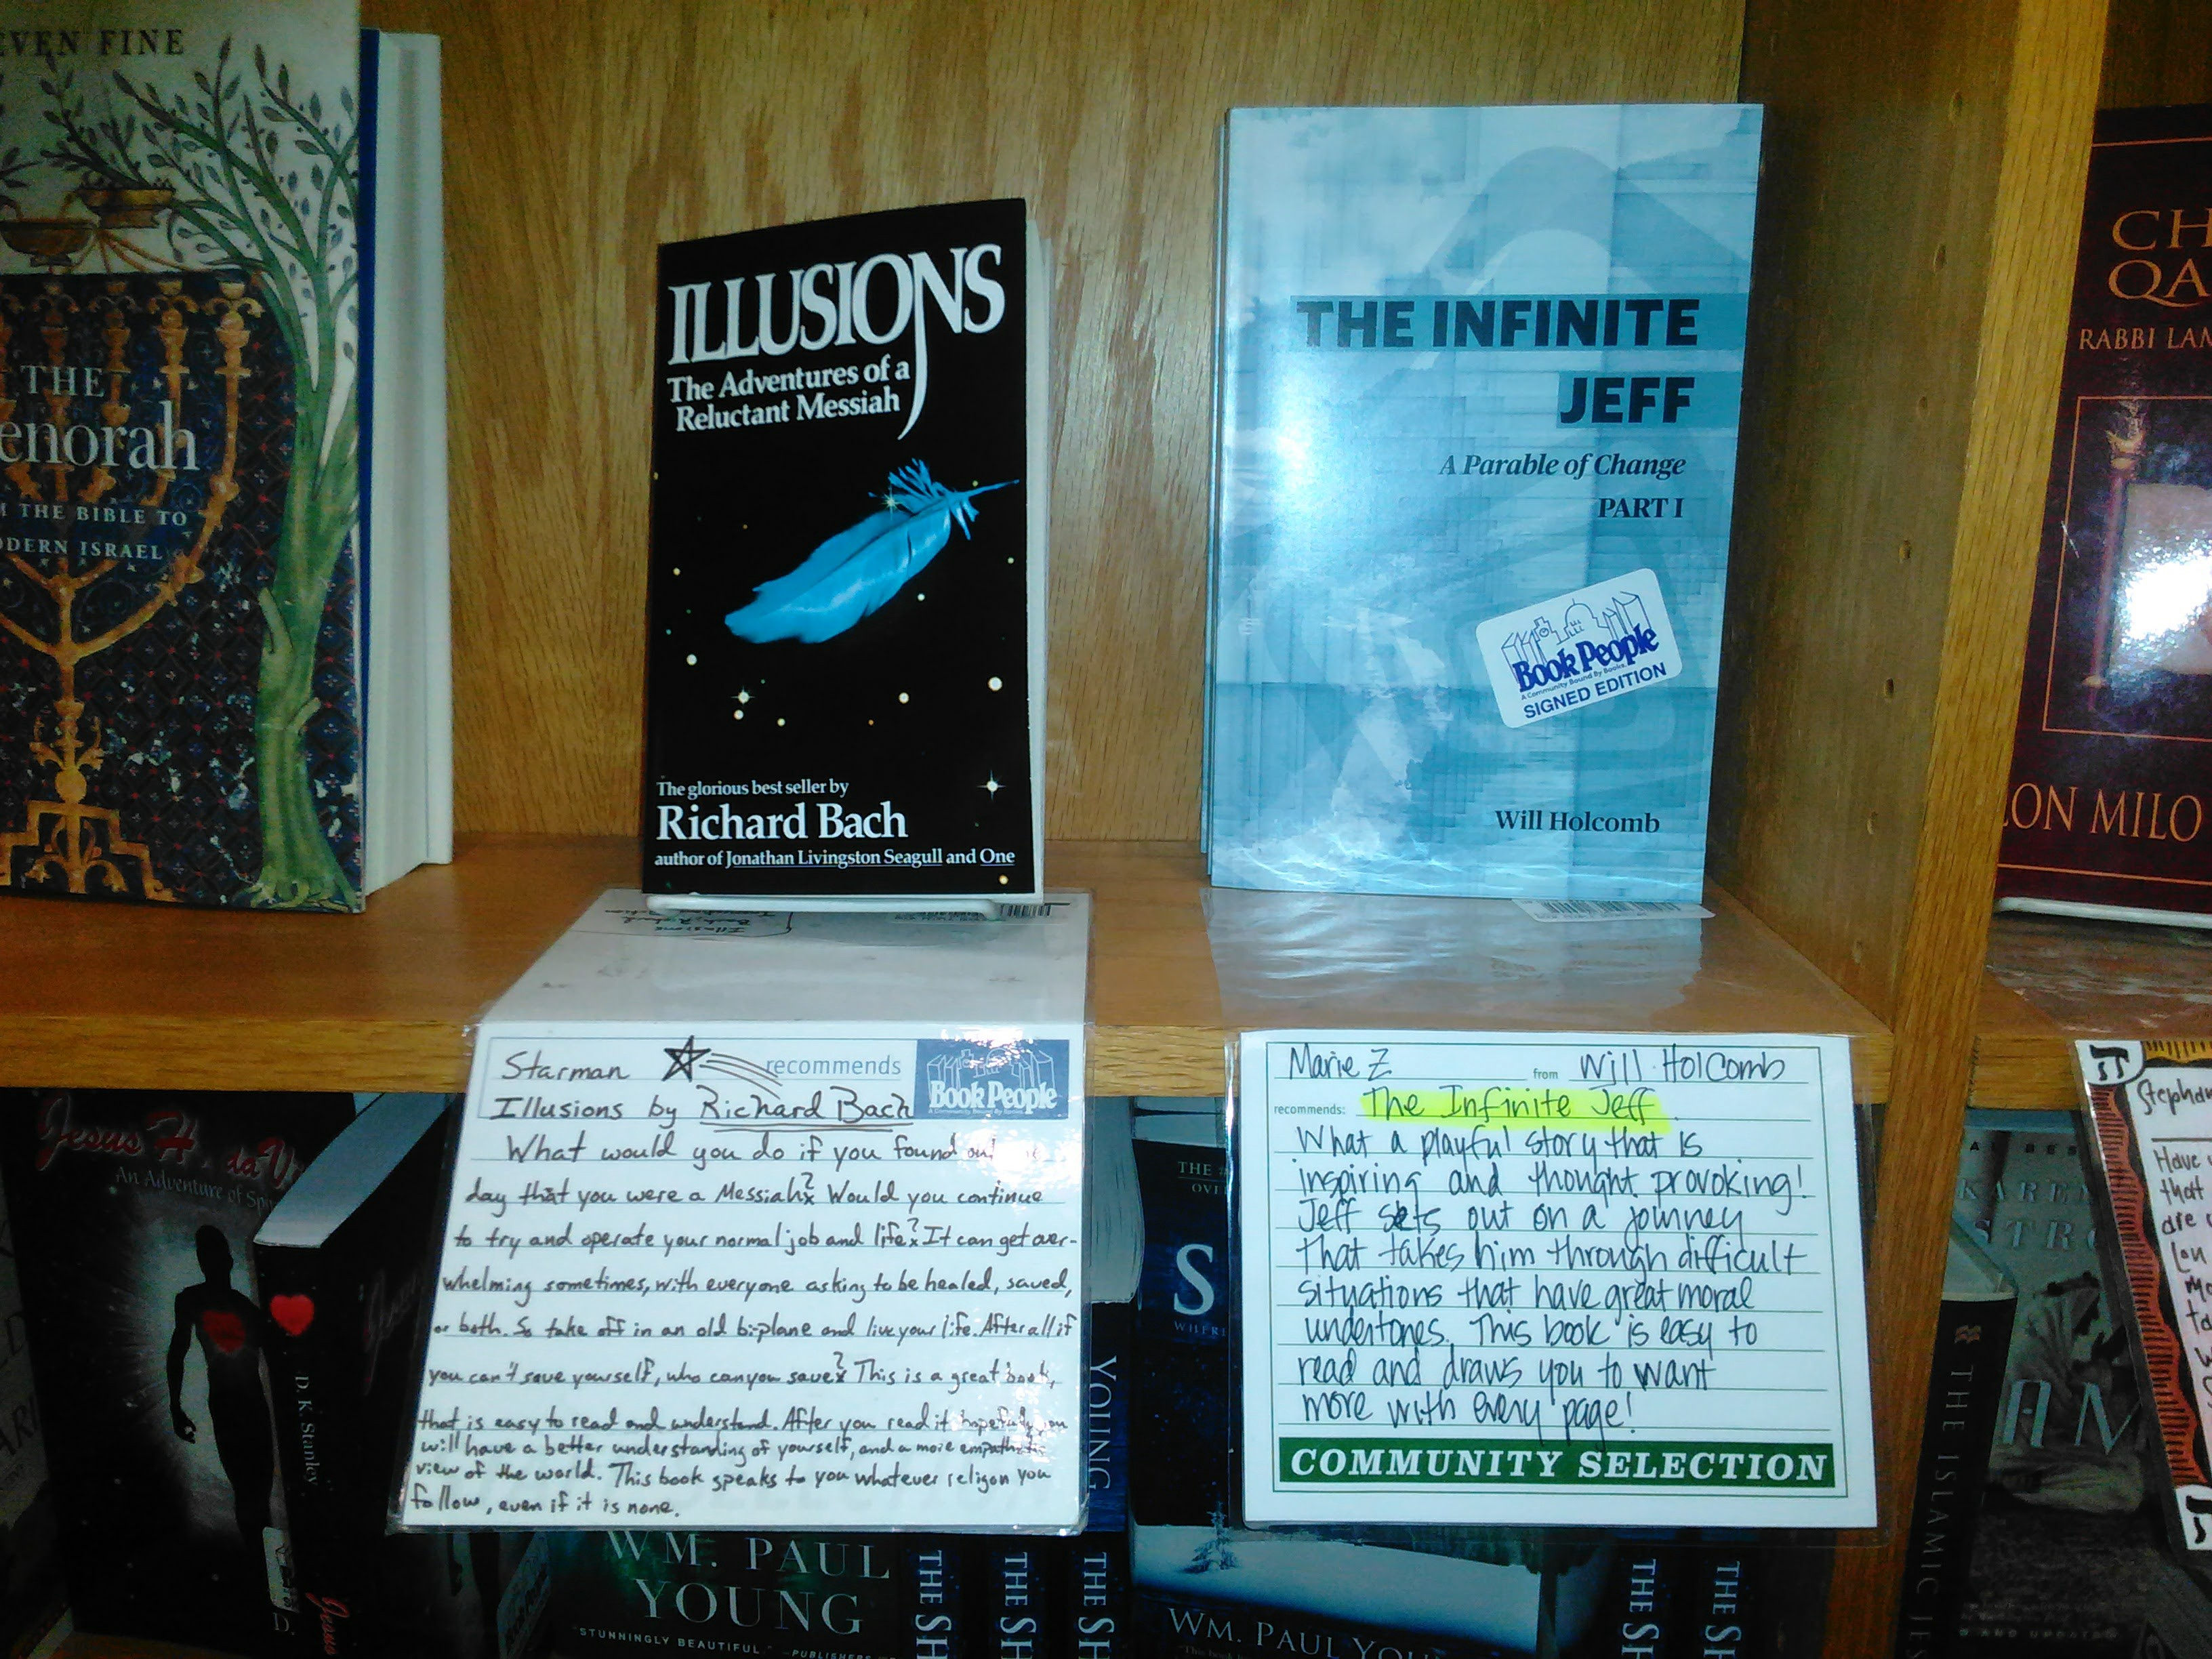 The Infinite Jeff, by author Will Holcomb on the shelf at Book People in Austin, Texas next to Richard Bach's Illusions.